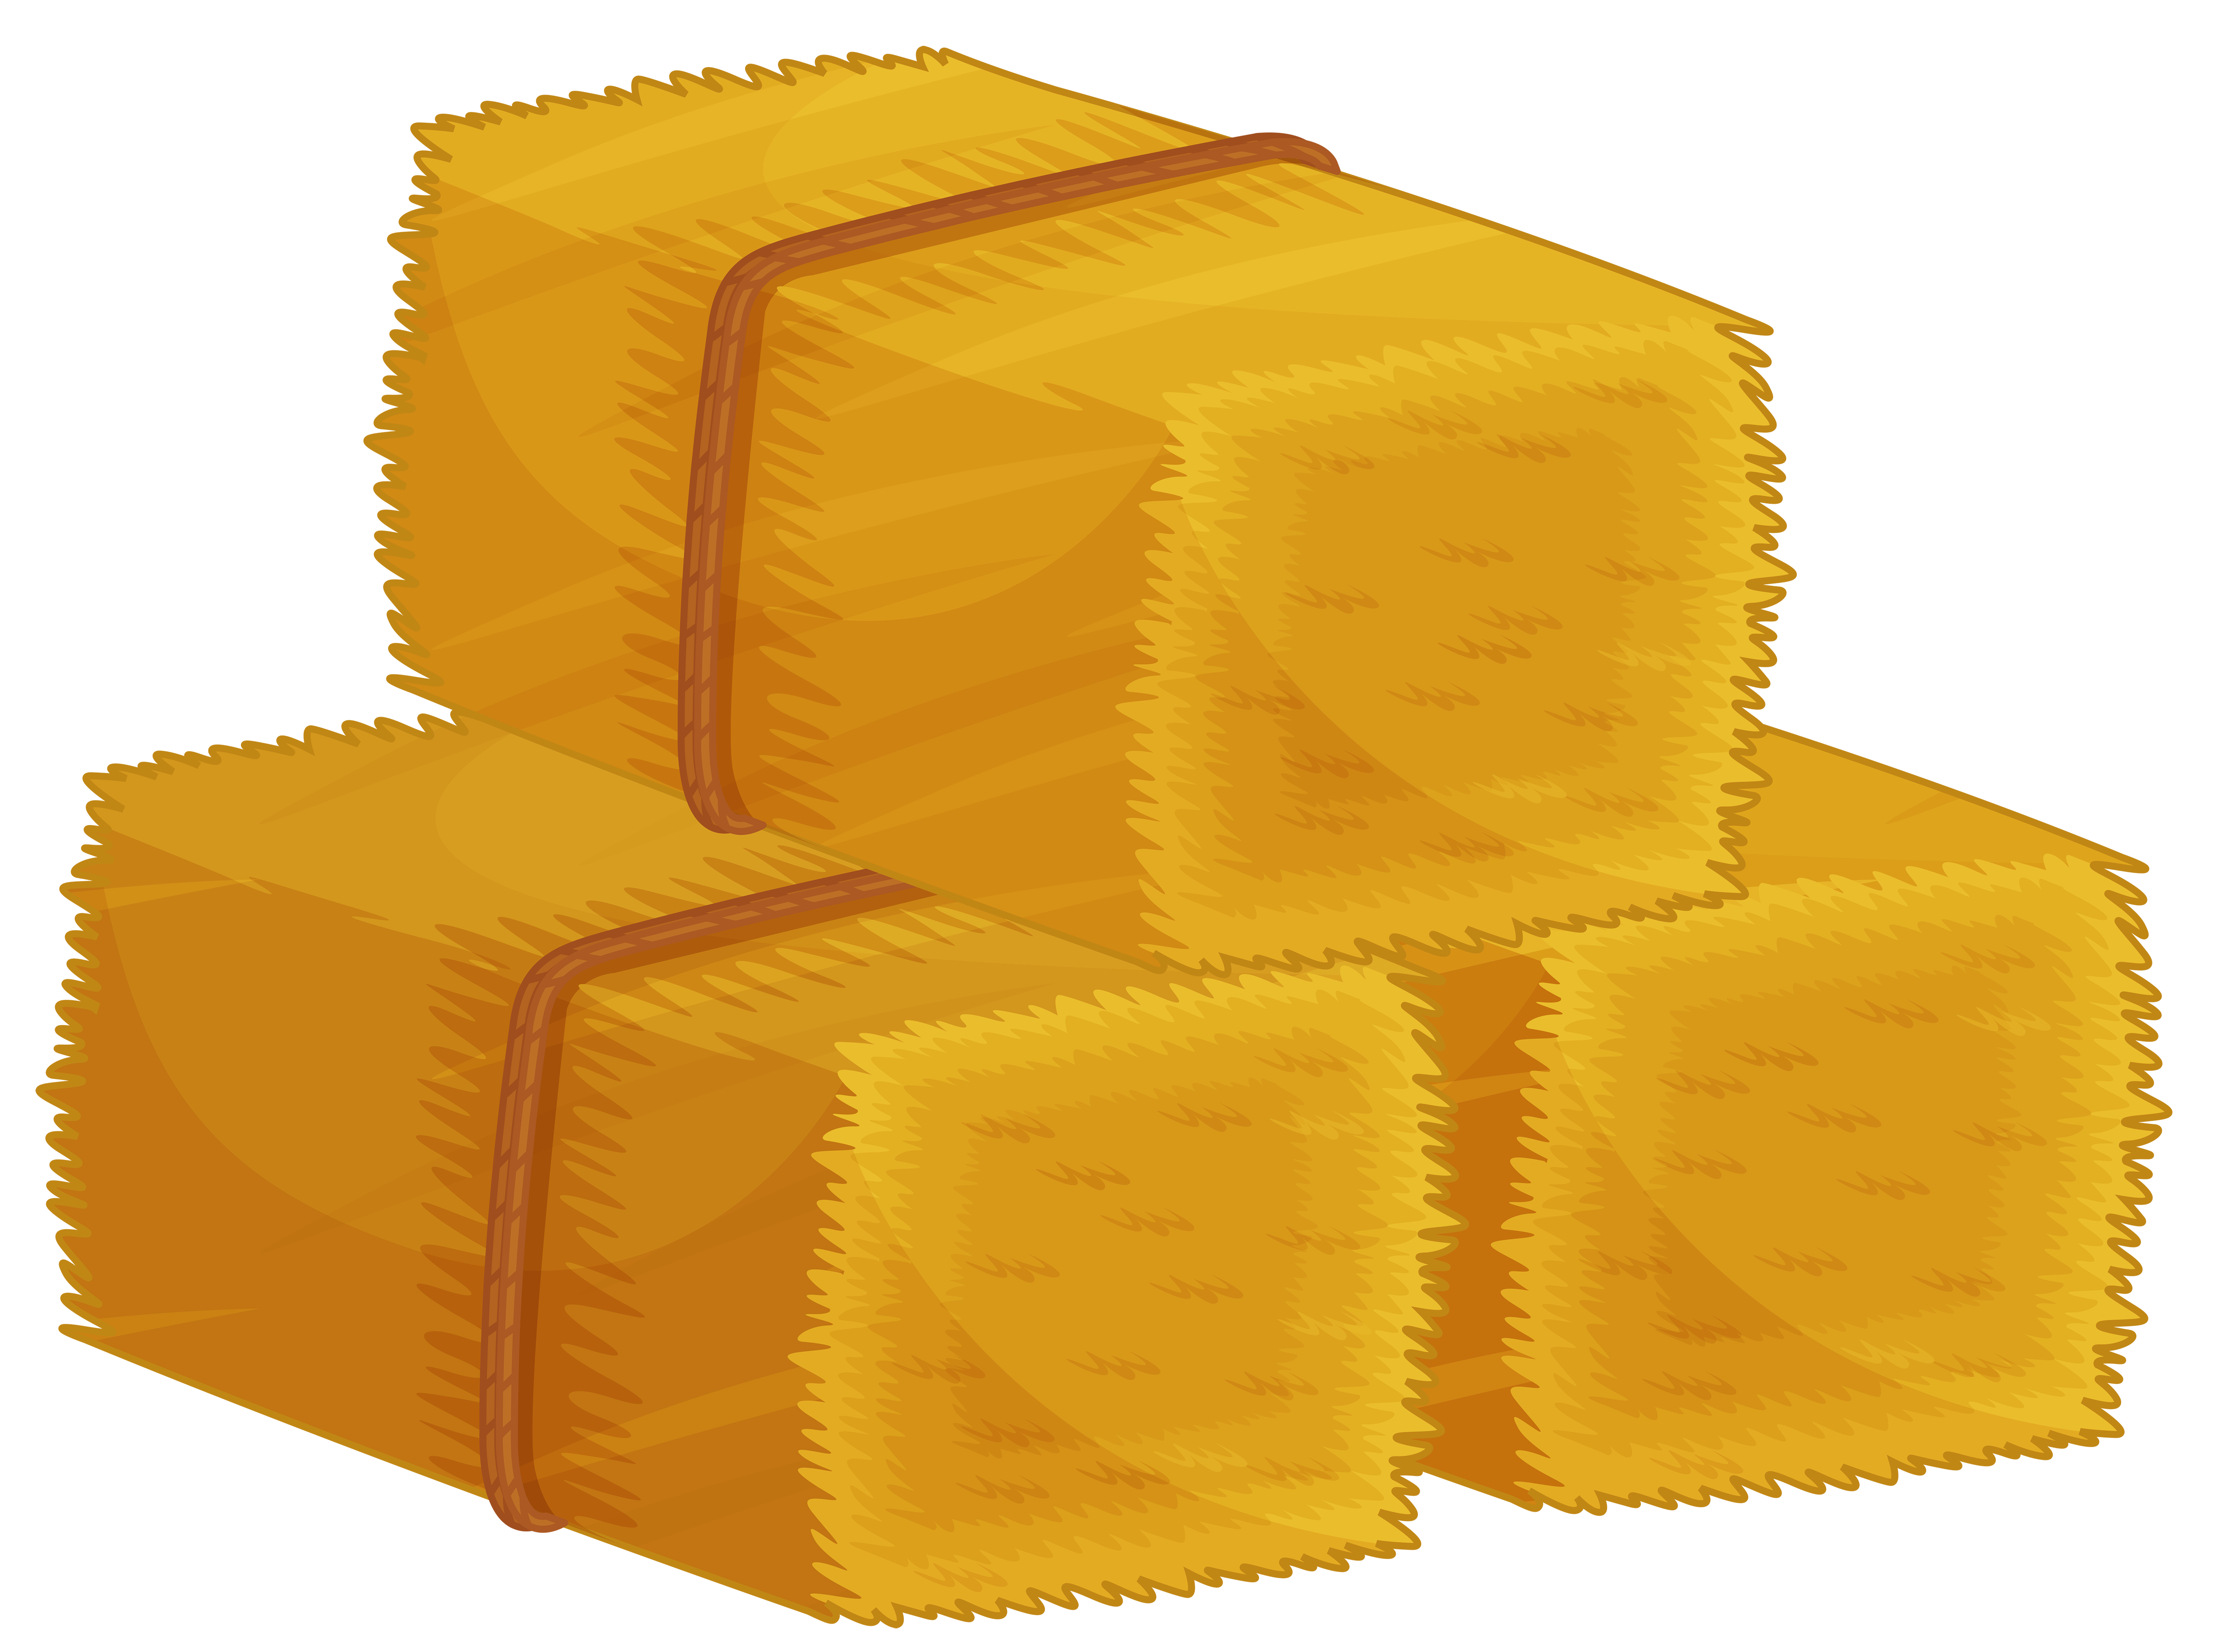 Dance clipart bale. Hay bales png picture